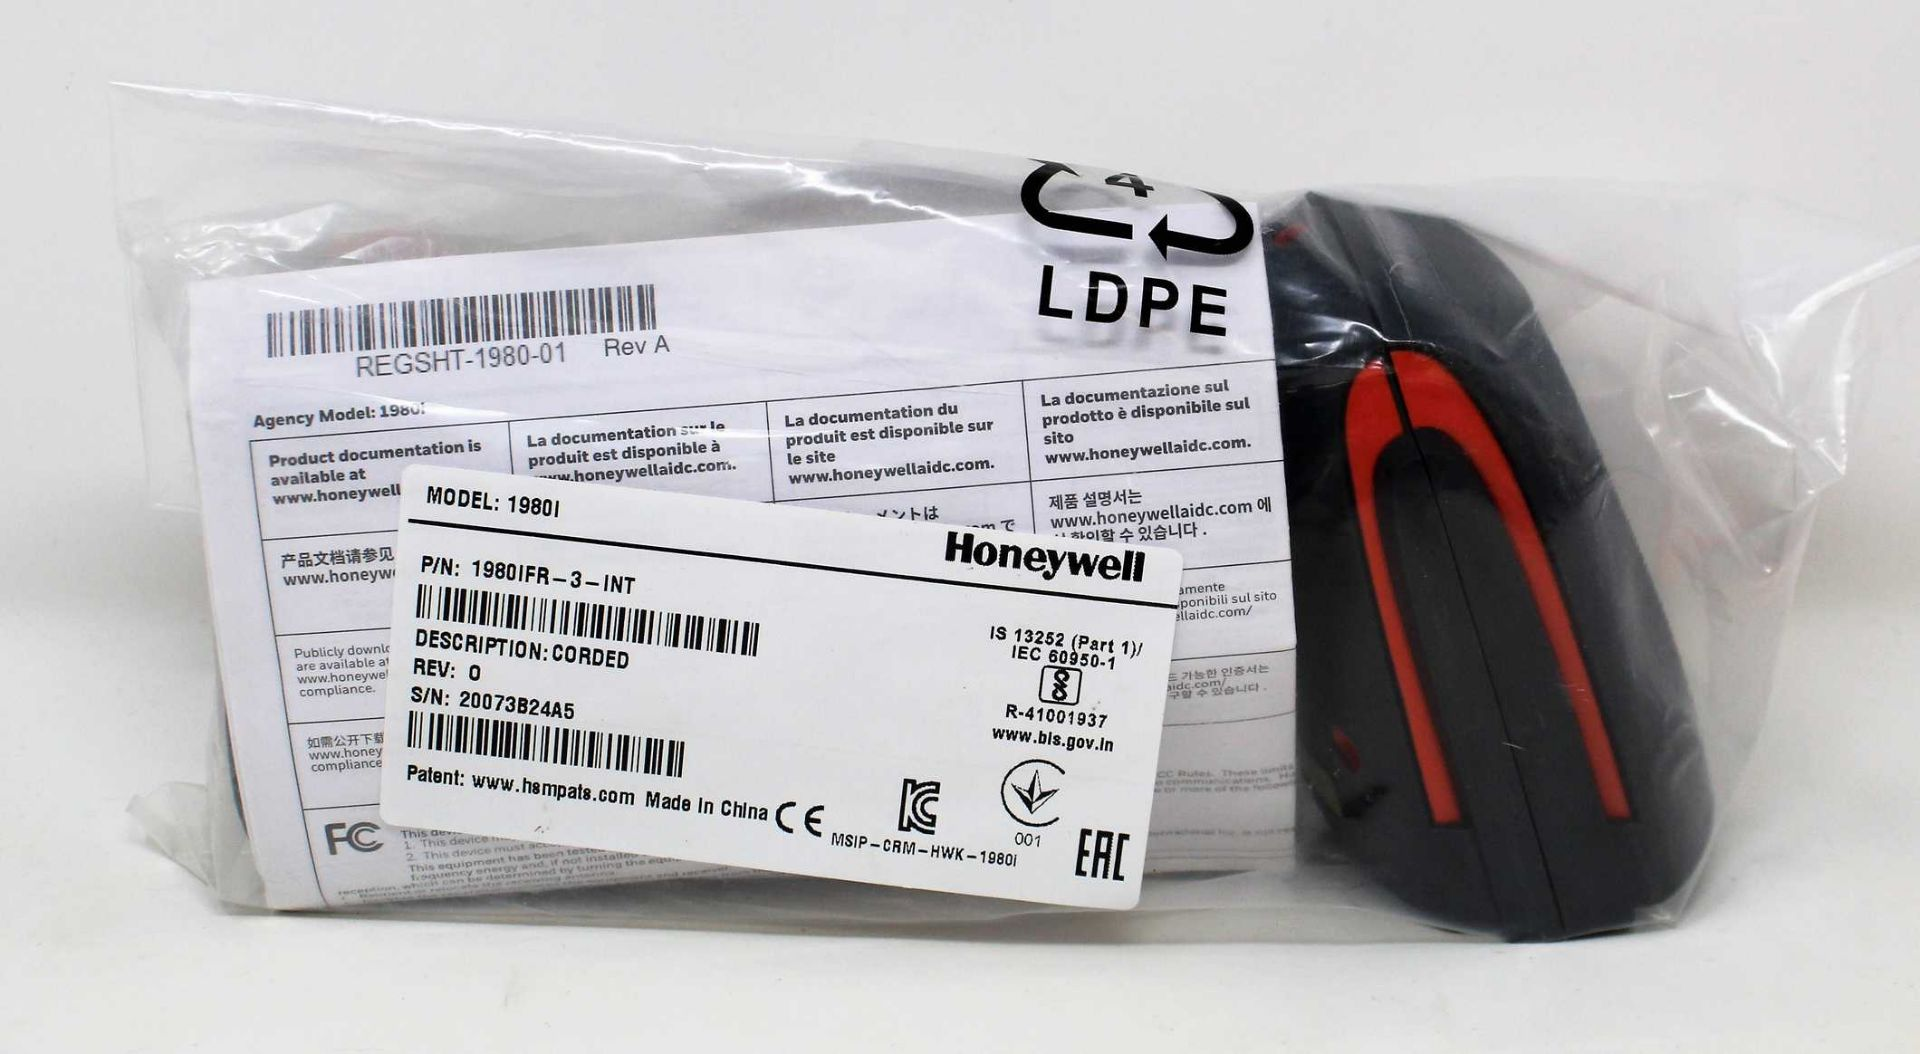 An as new Honeywell Granit 1981i Industrial Corded Barcode Scanner (P/N: 1980IFR-3-INT) (Scanner